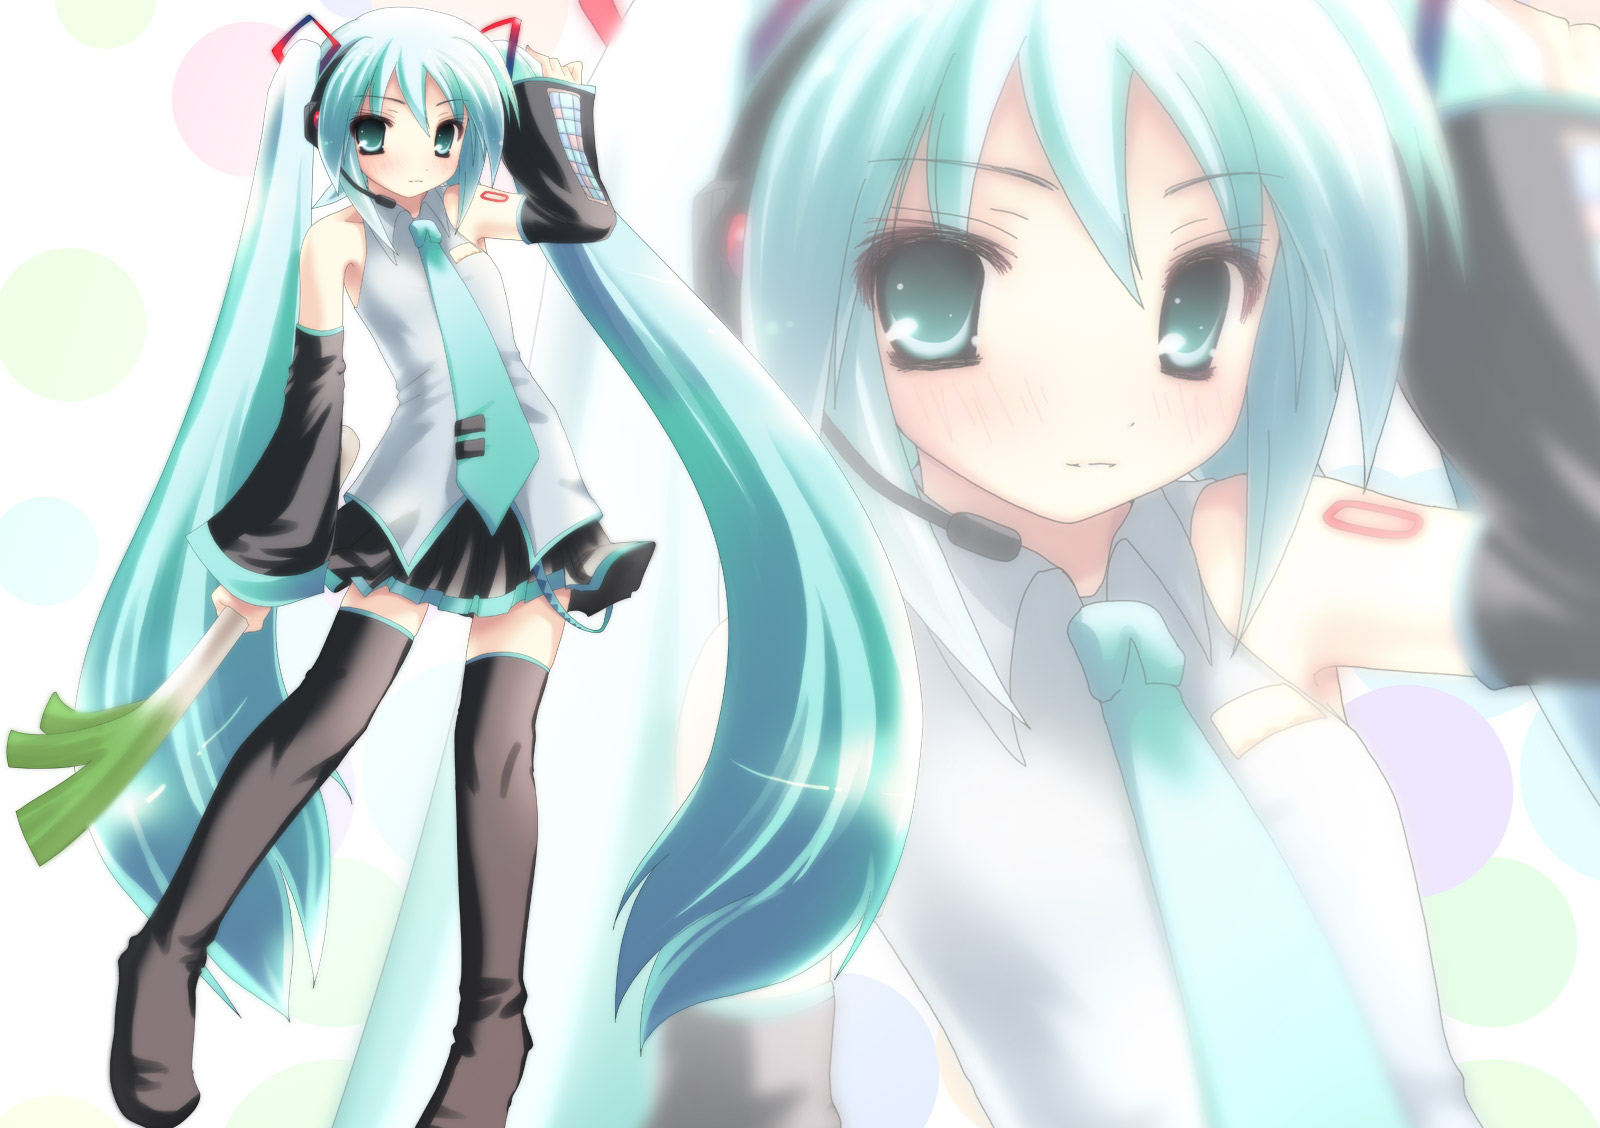 vocaloid cute miku anime - photo #26